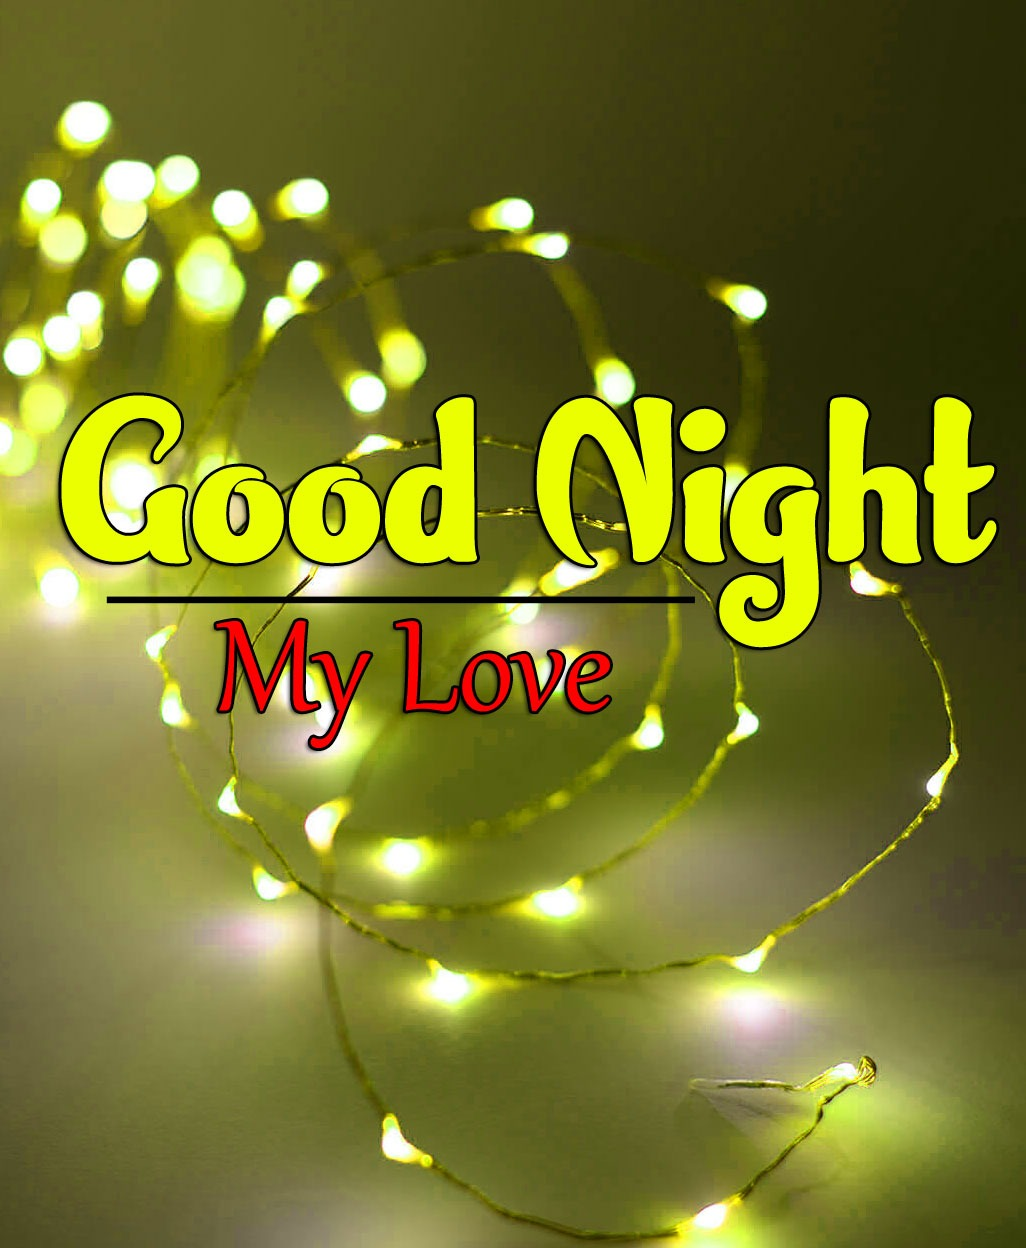 Good Night Wishes k Images Pics for Friend